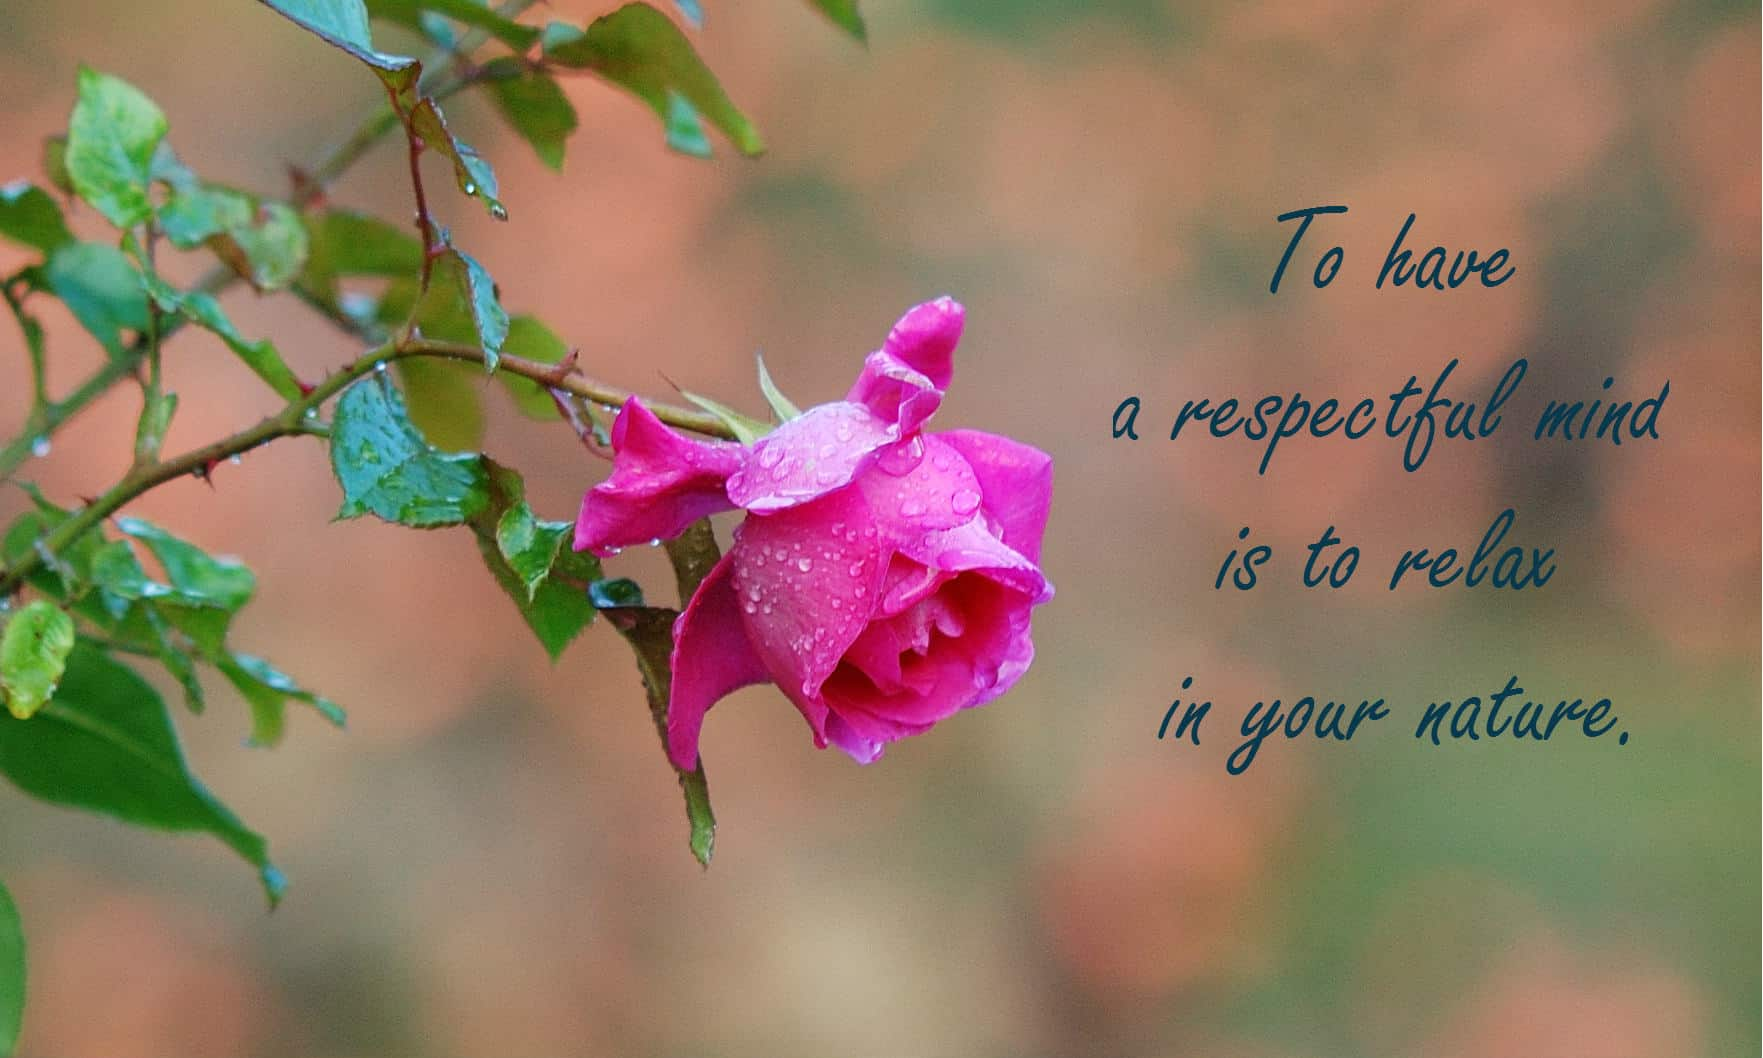 To have a respectful mind is to relax in your nature.